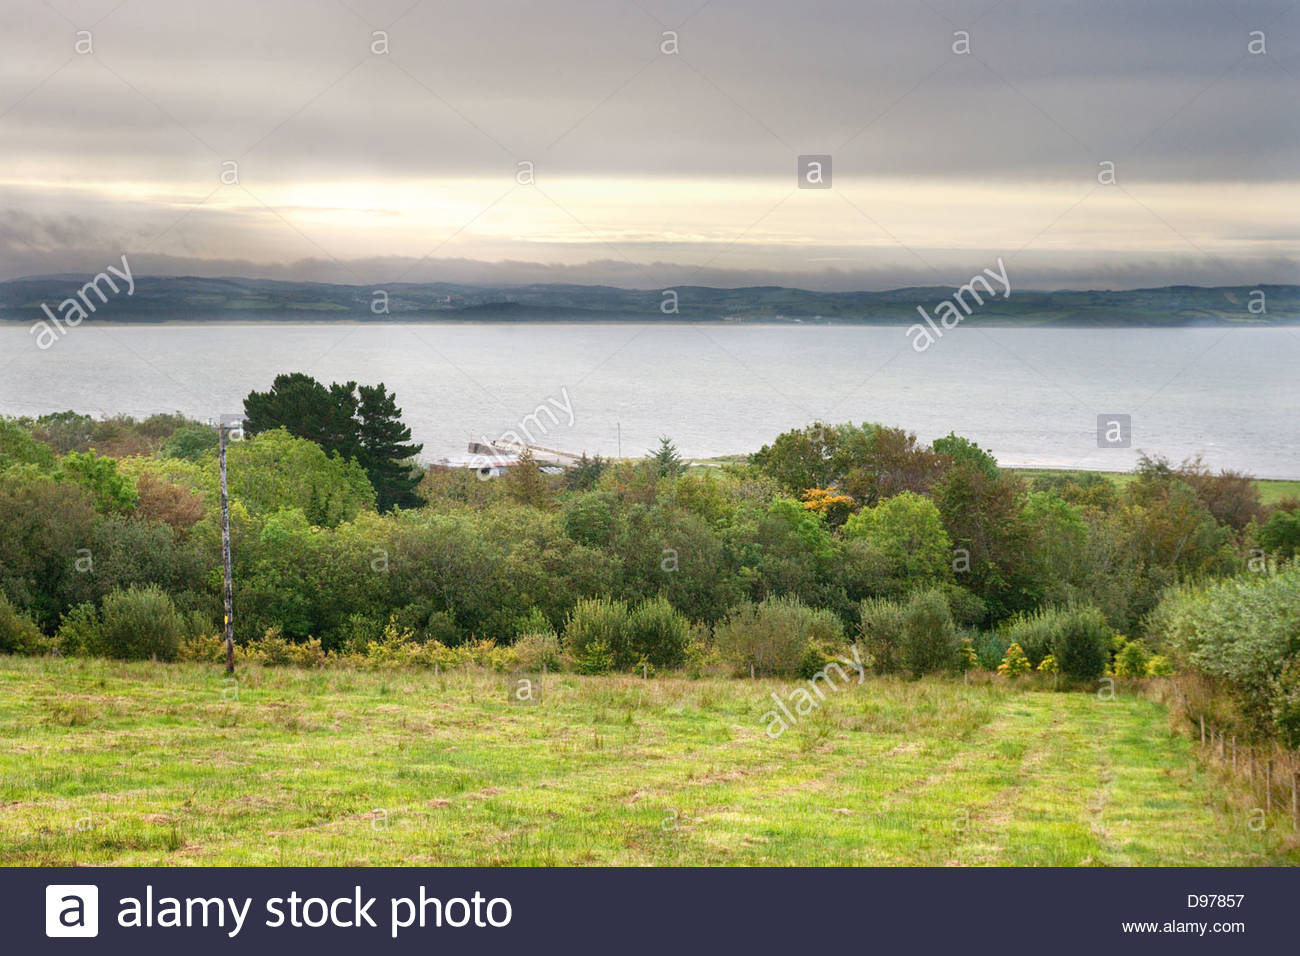 View over Salthill House gardens to the Irish Sea and Donegal Bay. - Stock Image